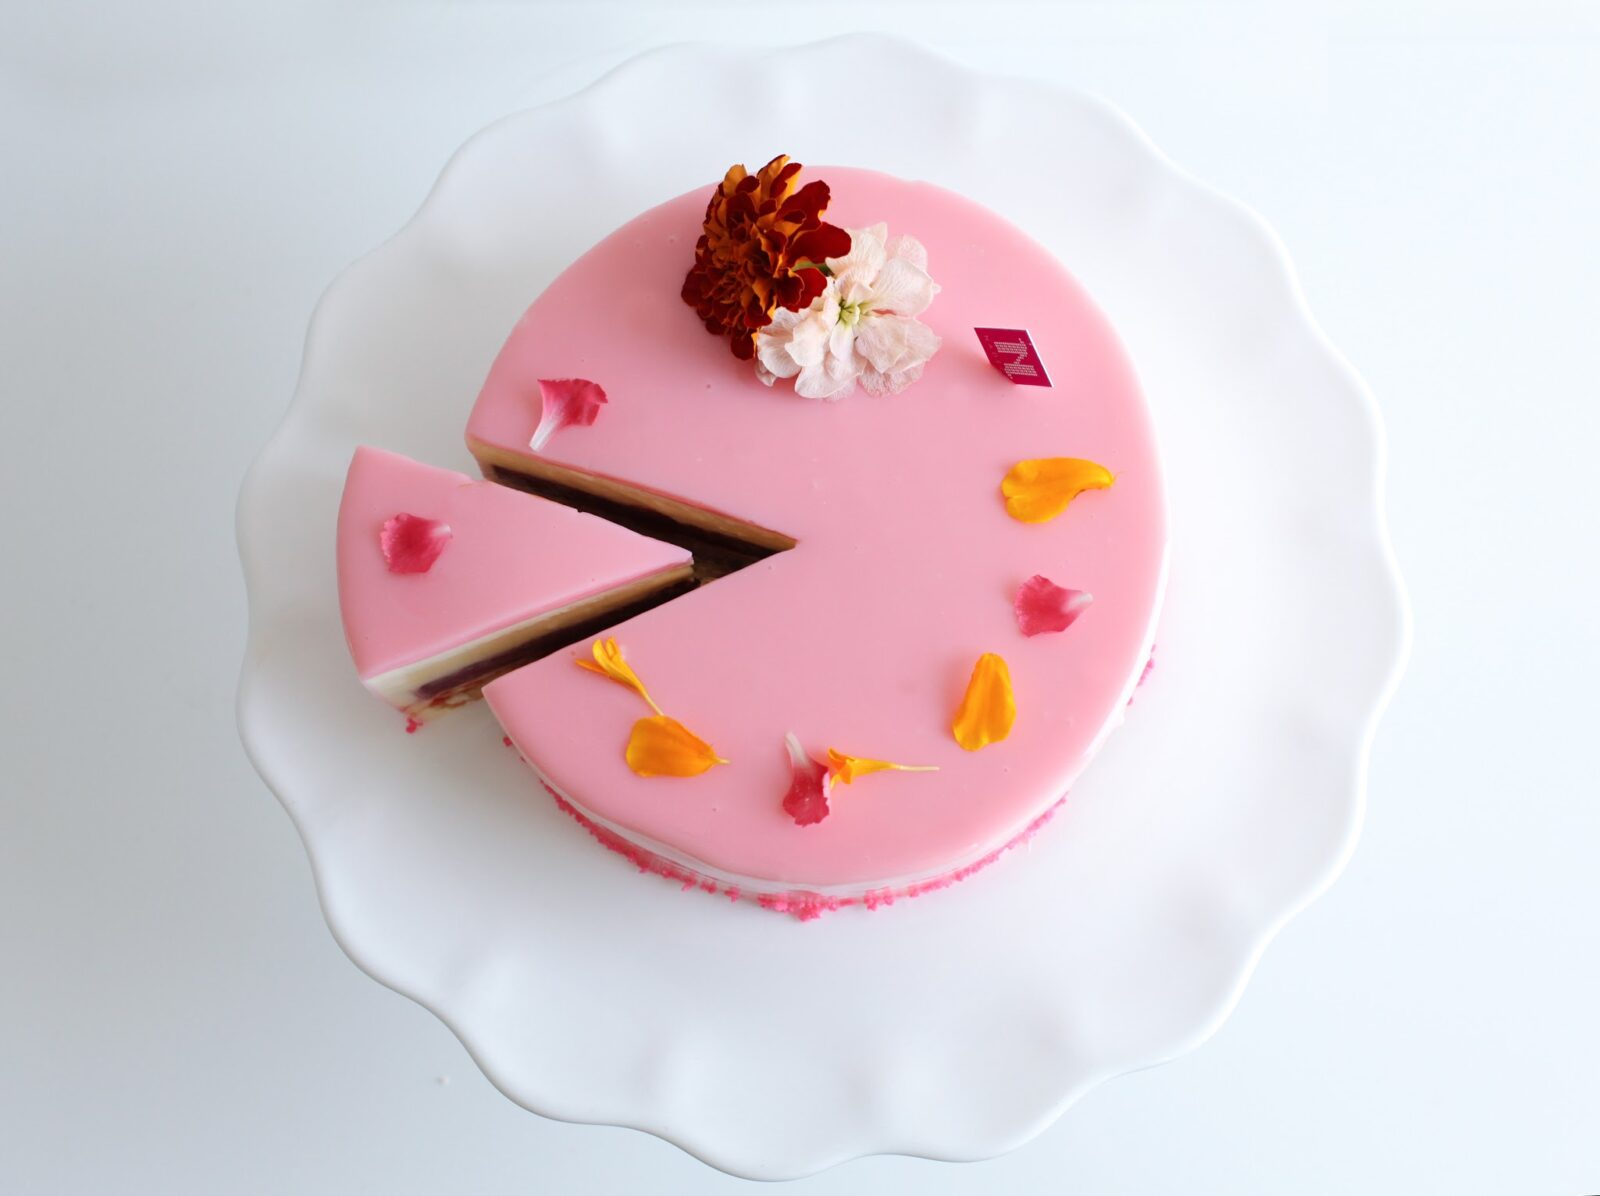 Pastry Pink Blossom Chef Nadège Nourian edit seven founder files